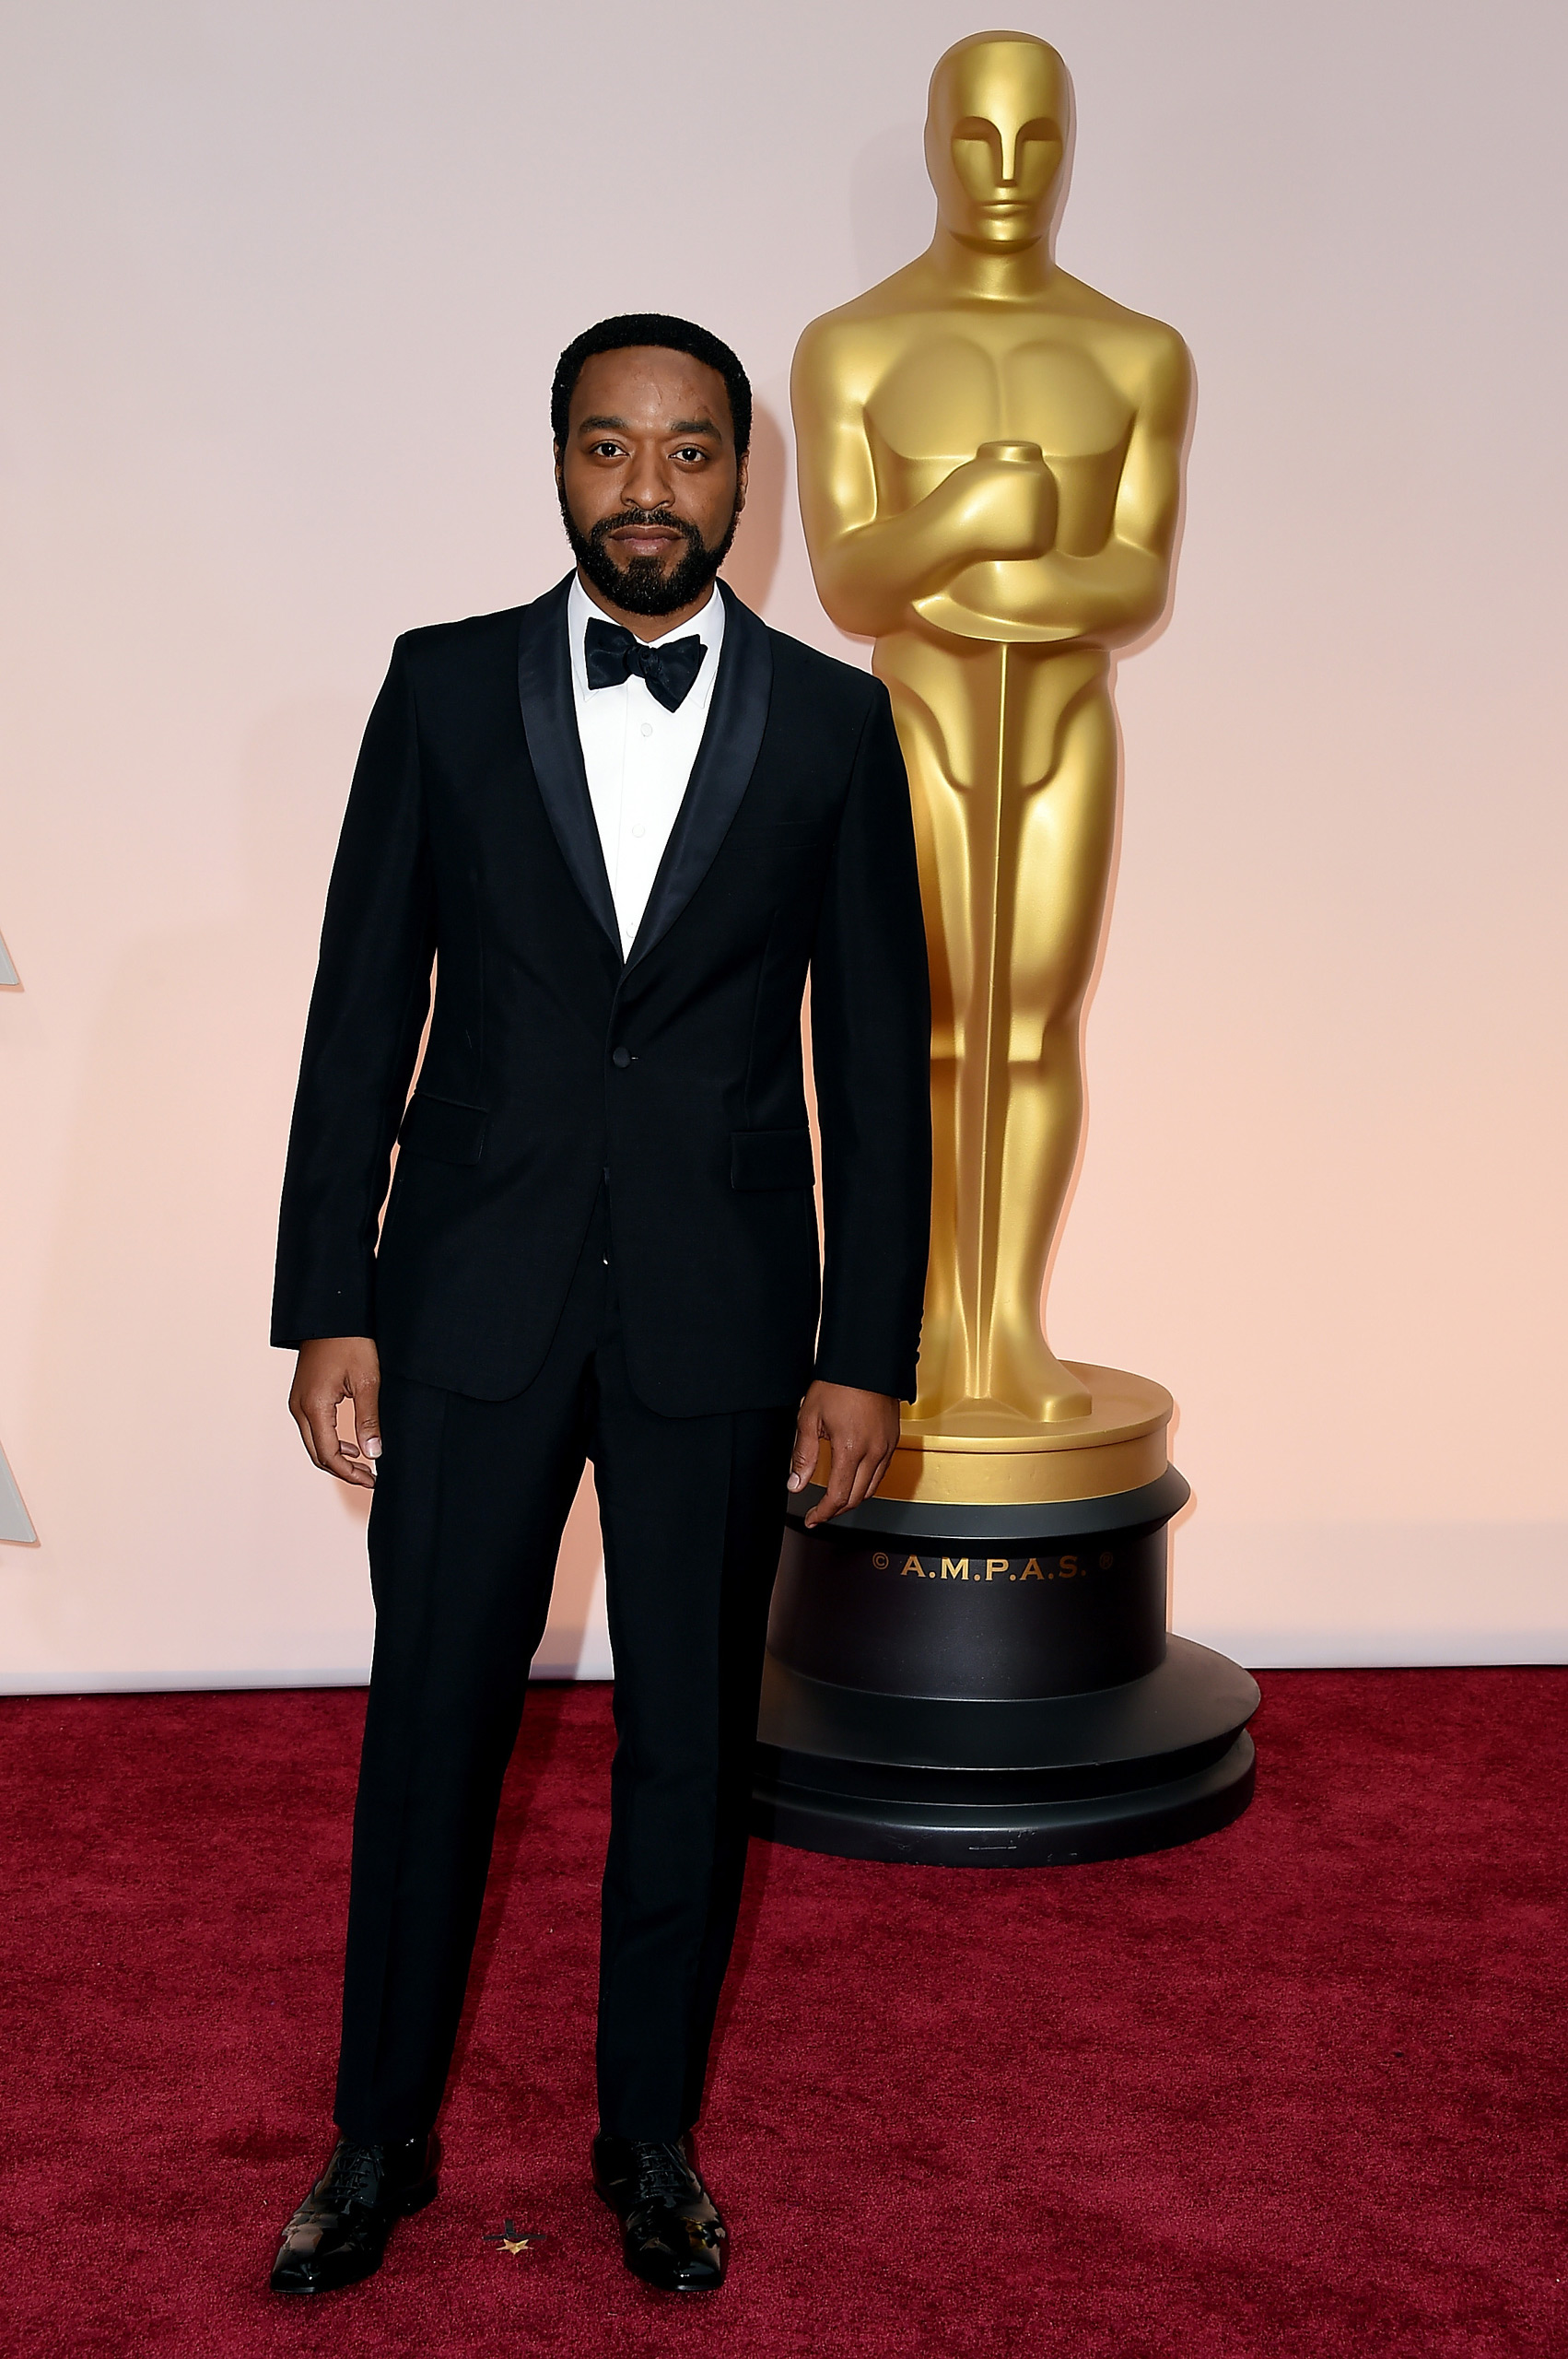 Chiwetel Ejiofor attends the 87th Annual Academy Awards on Feb. 22, 2015 in Hollywood, Calif.